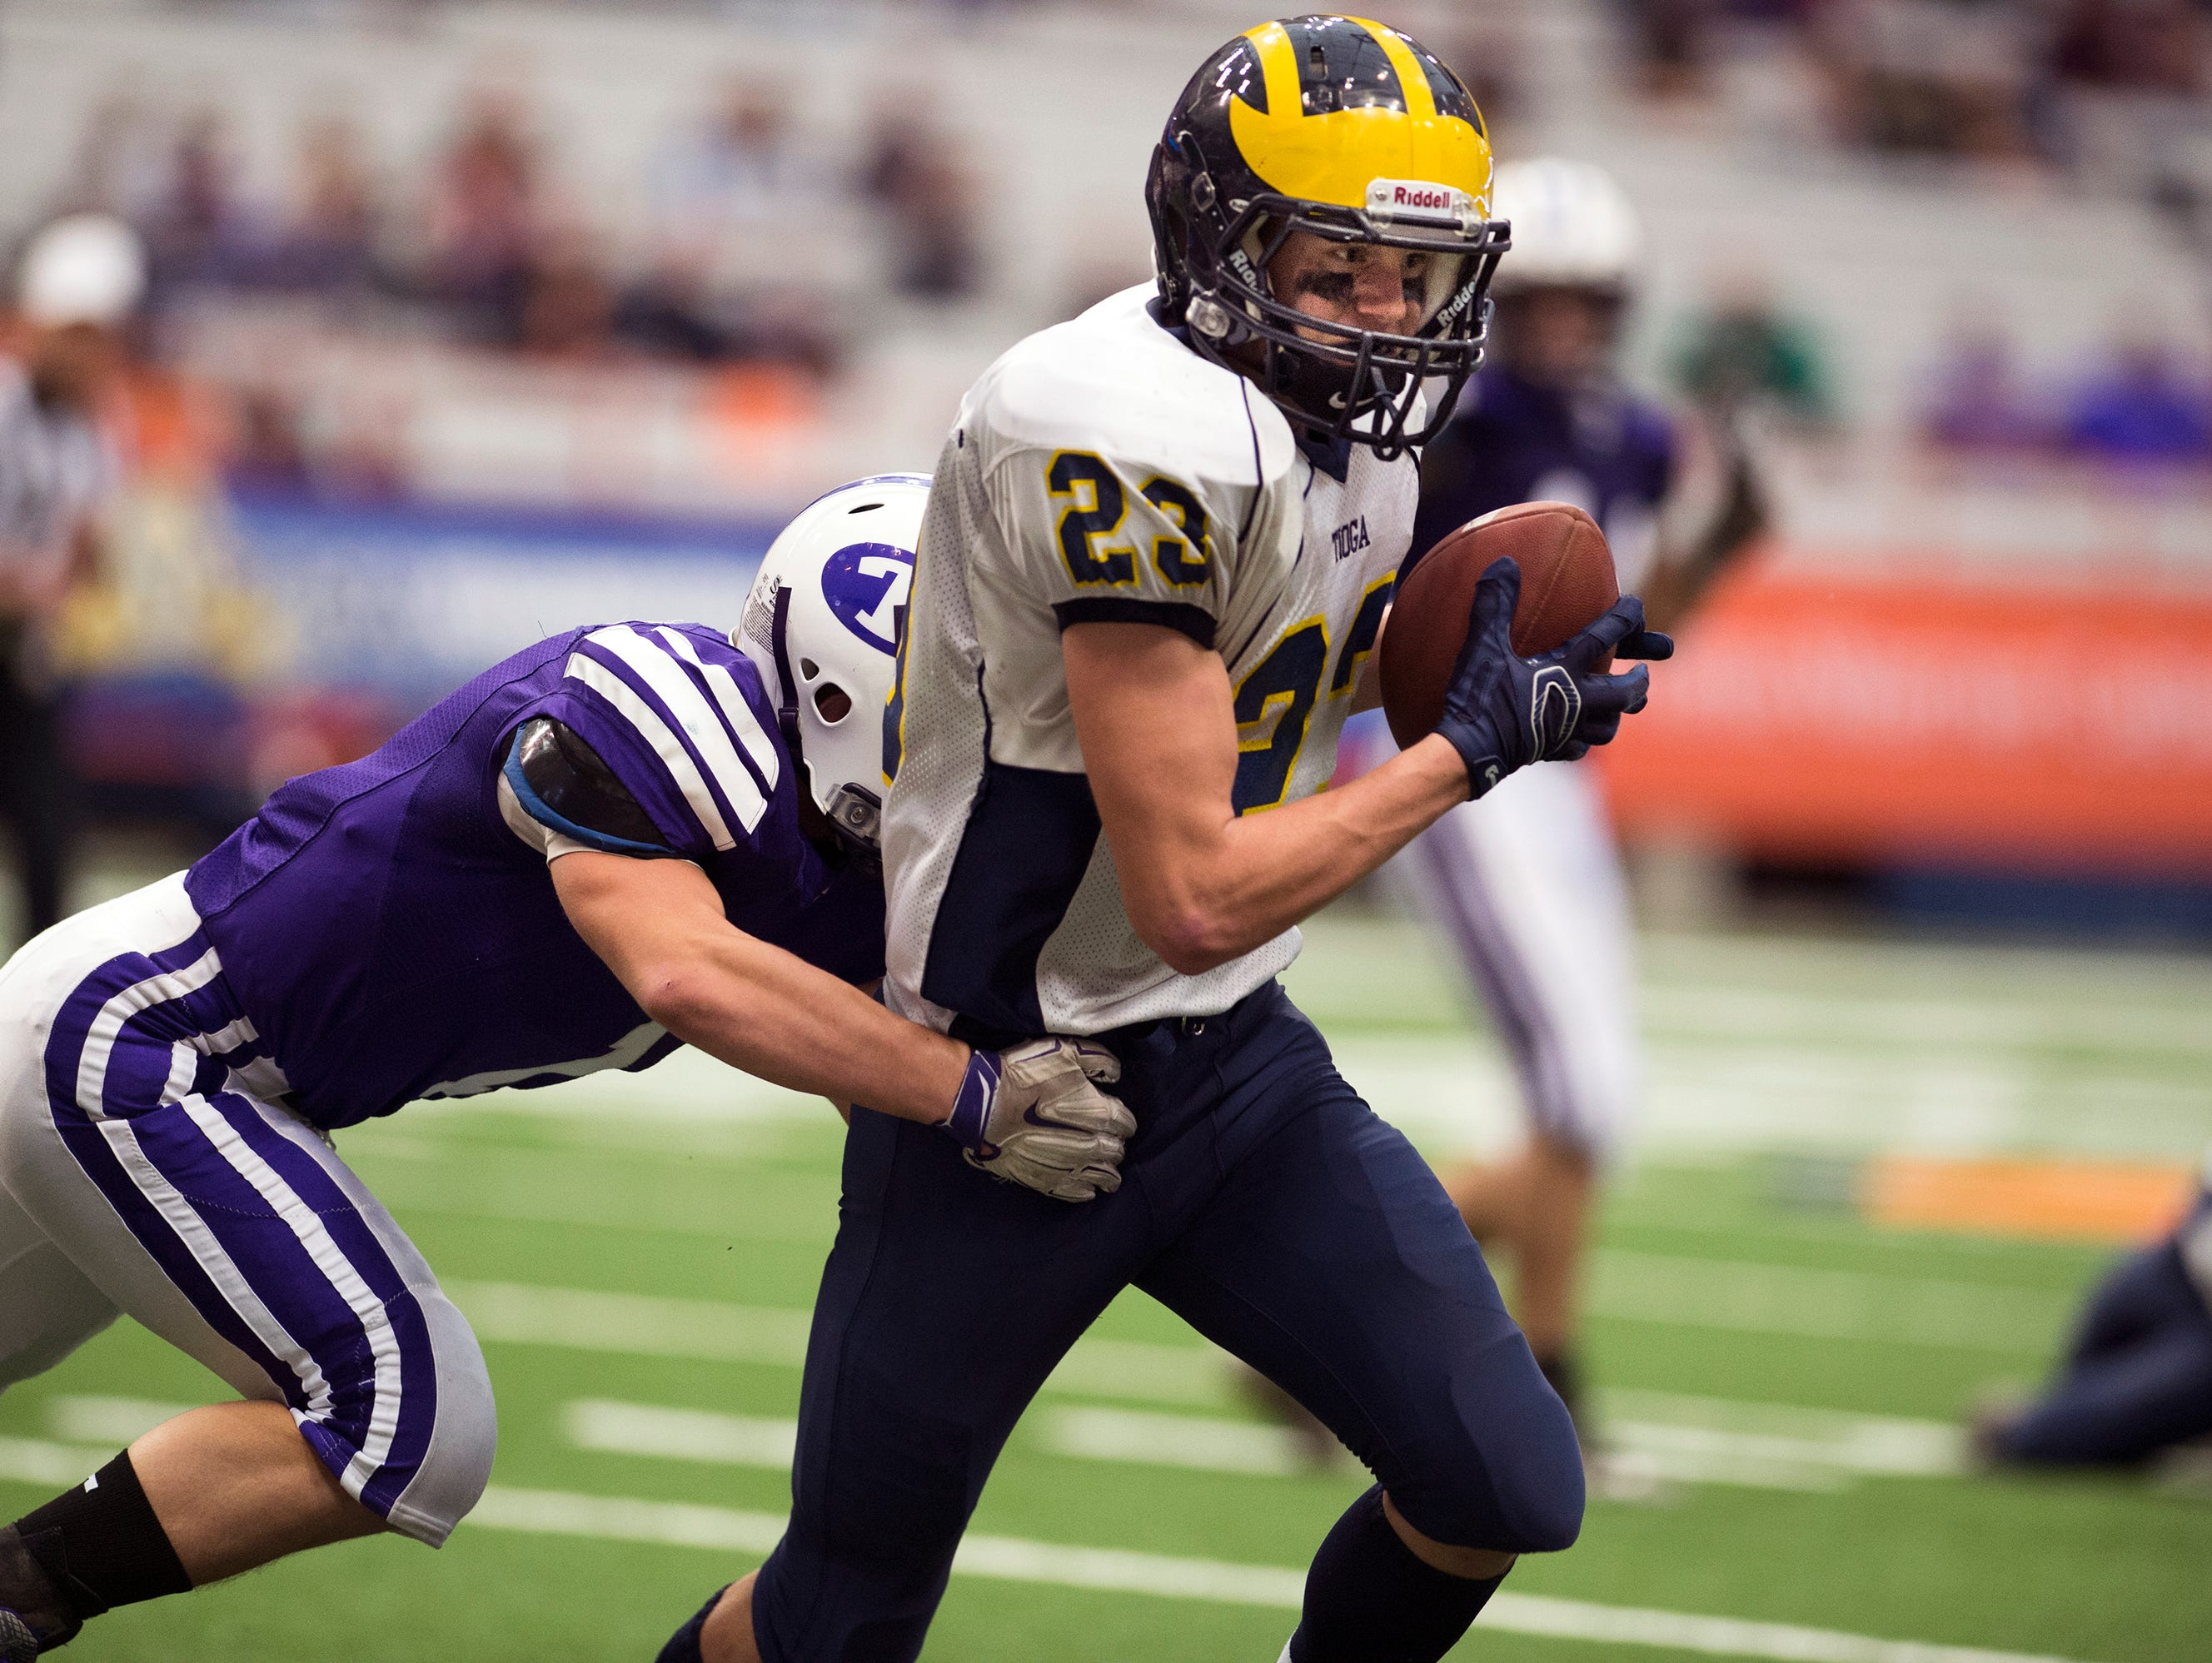 Tioga running back Tyler Whitmore hauls in a pass during the third quarter of the Tiger's 33-26 win over Ticonderoga in the Class D State Championship game in Syracuse on Friday, Nov. 27, 2015.